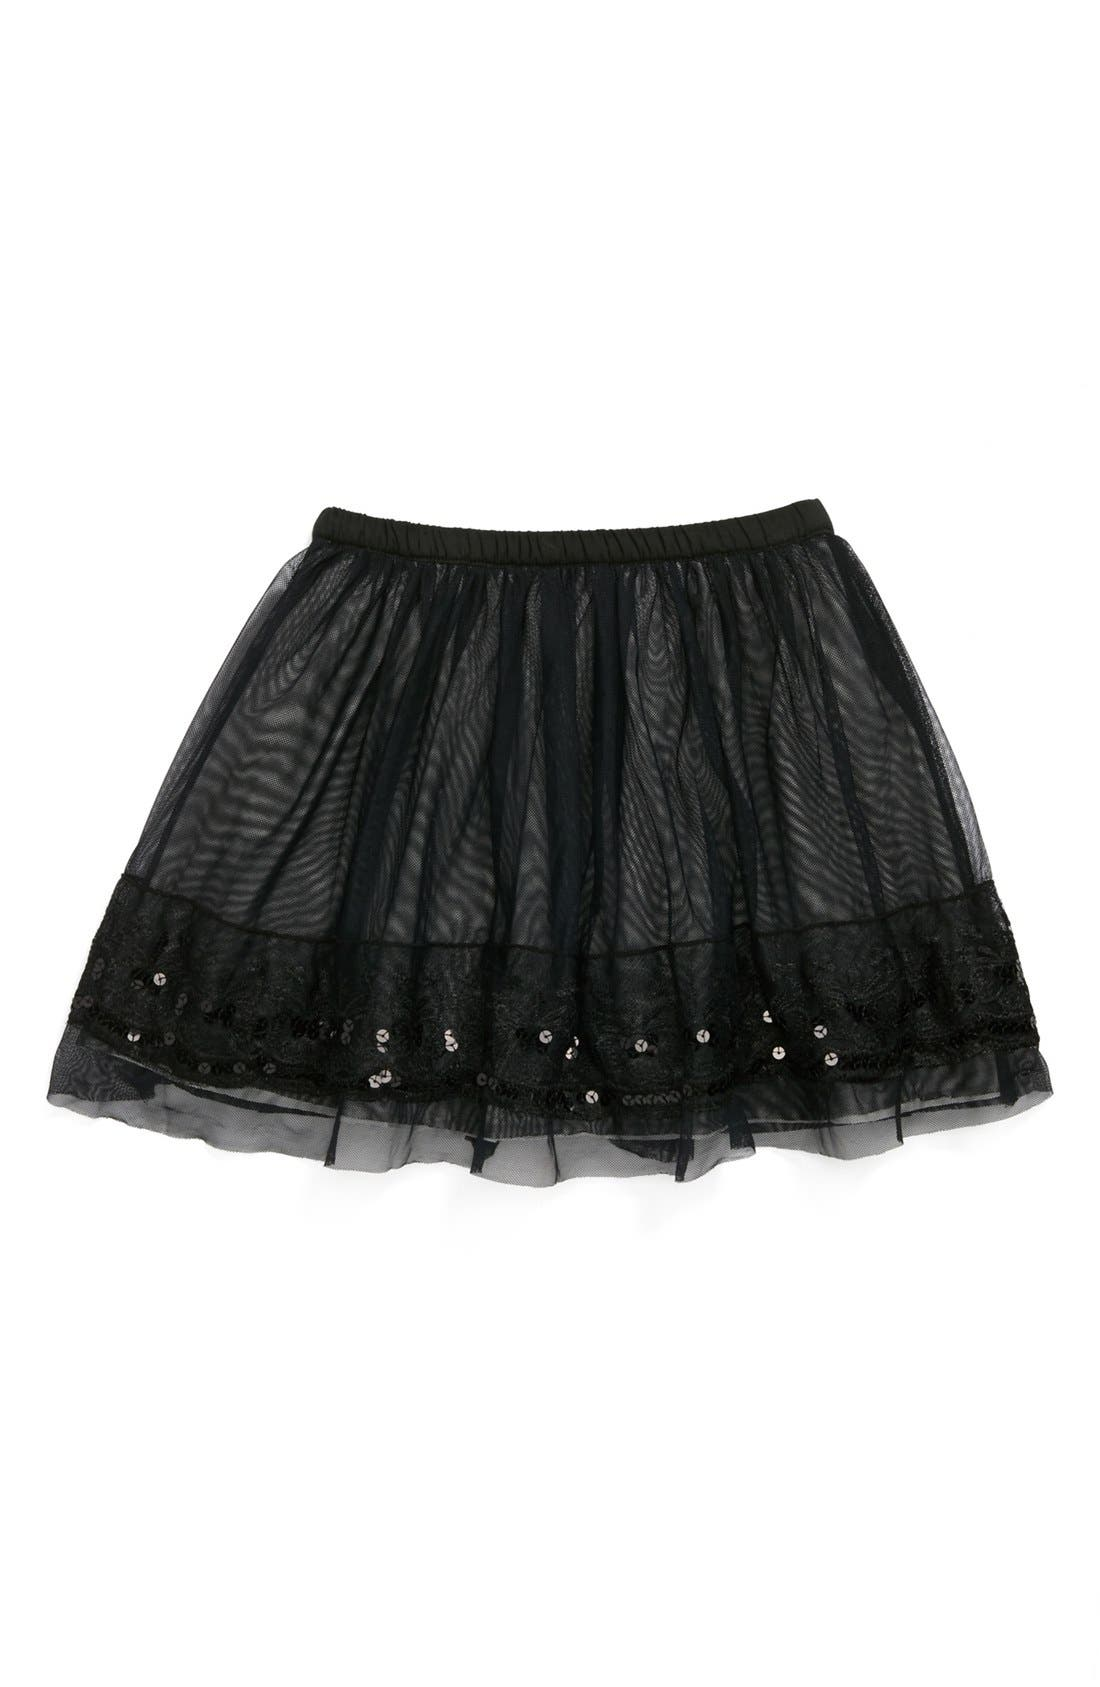 Main Image - Penny Candy 'Icicle' Skirt (Little Girls & Big Girls)